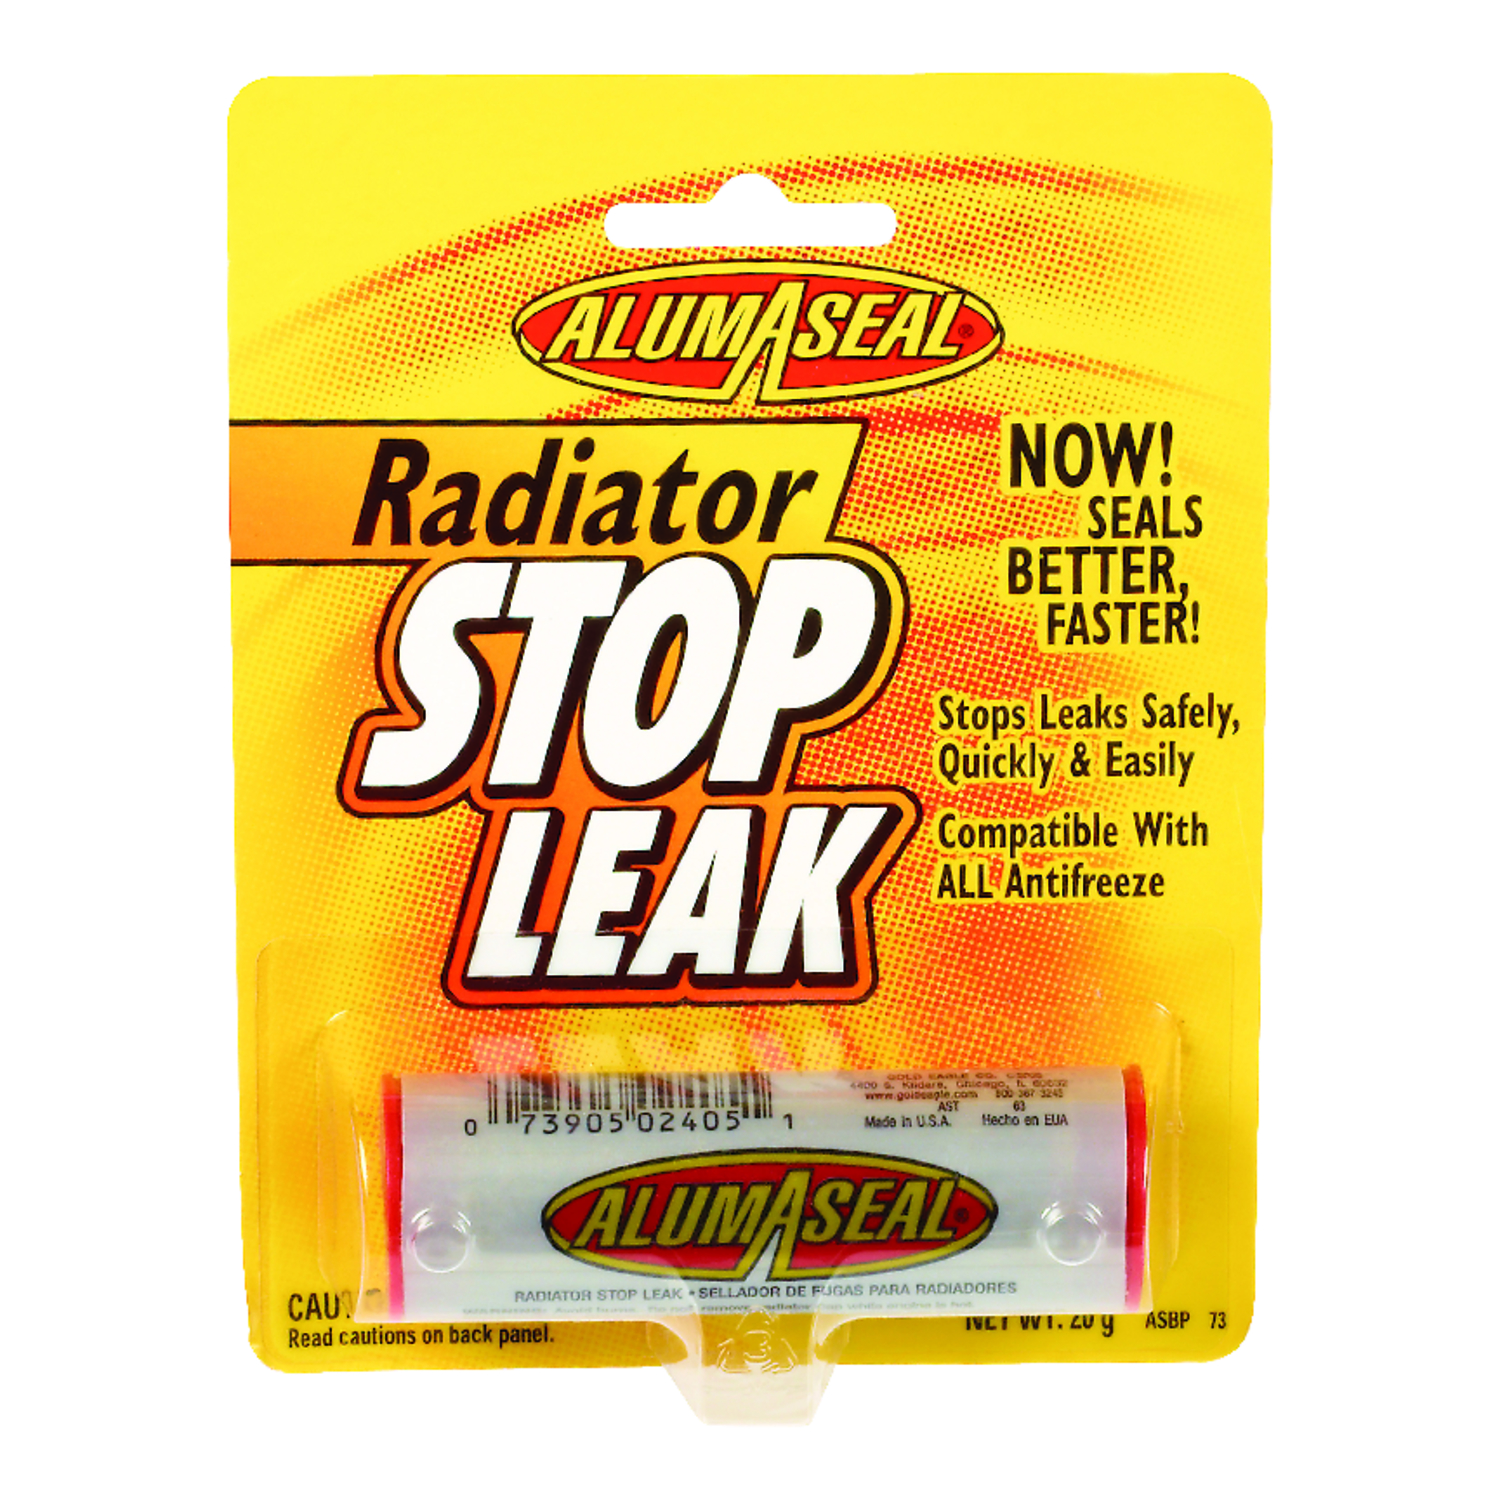 Alumaseal  Stop Leak Radiator Sealer  For Aluminum 0.7 oz. For Metal